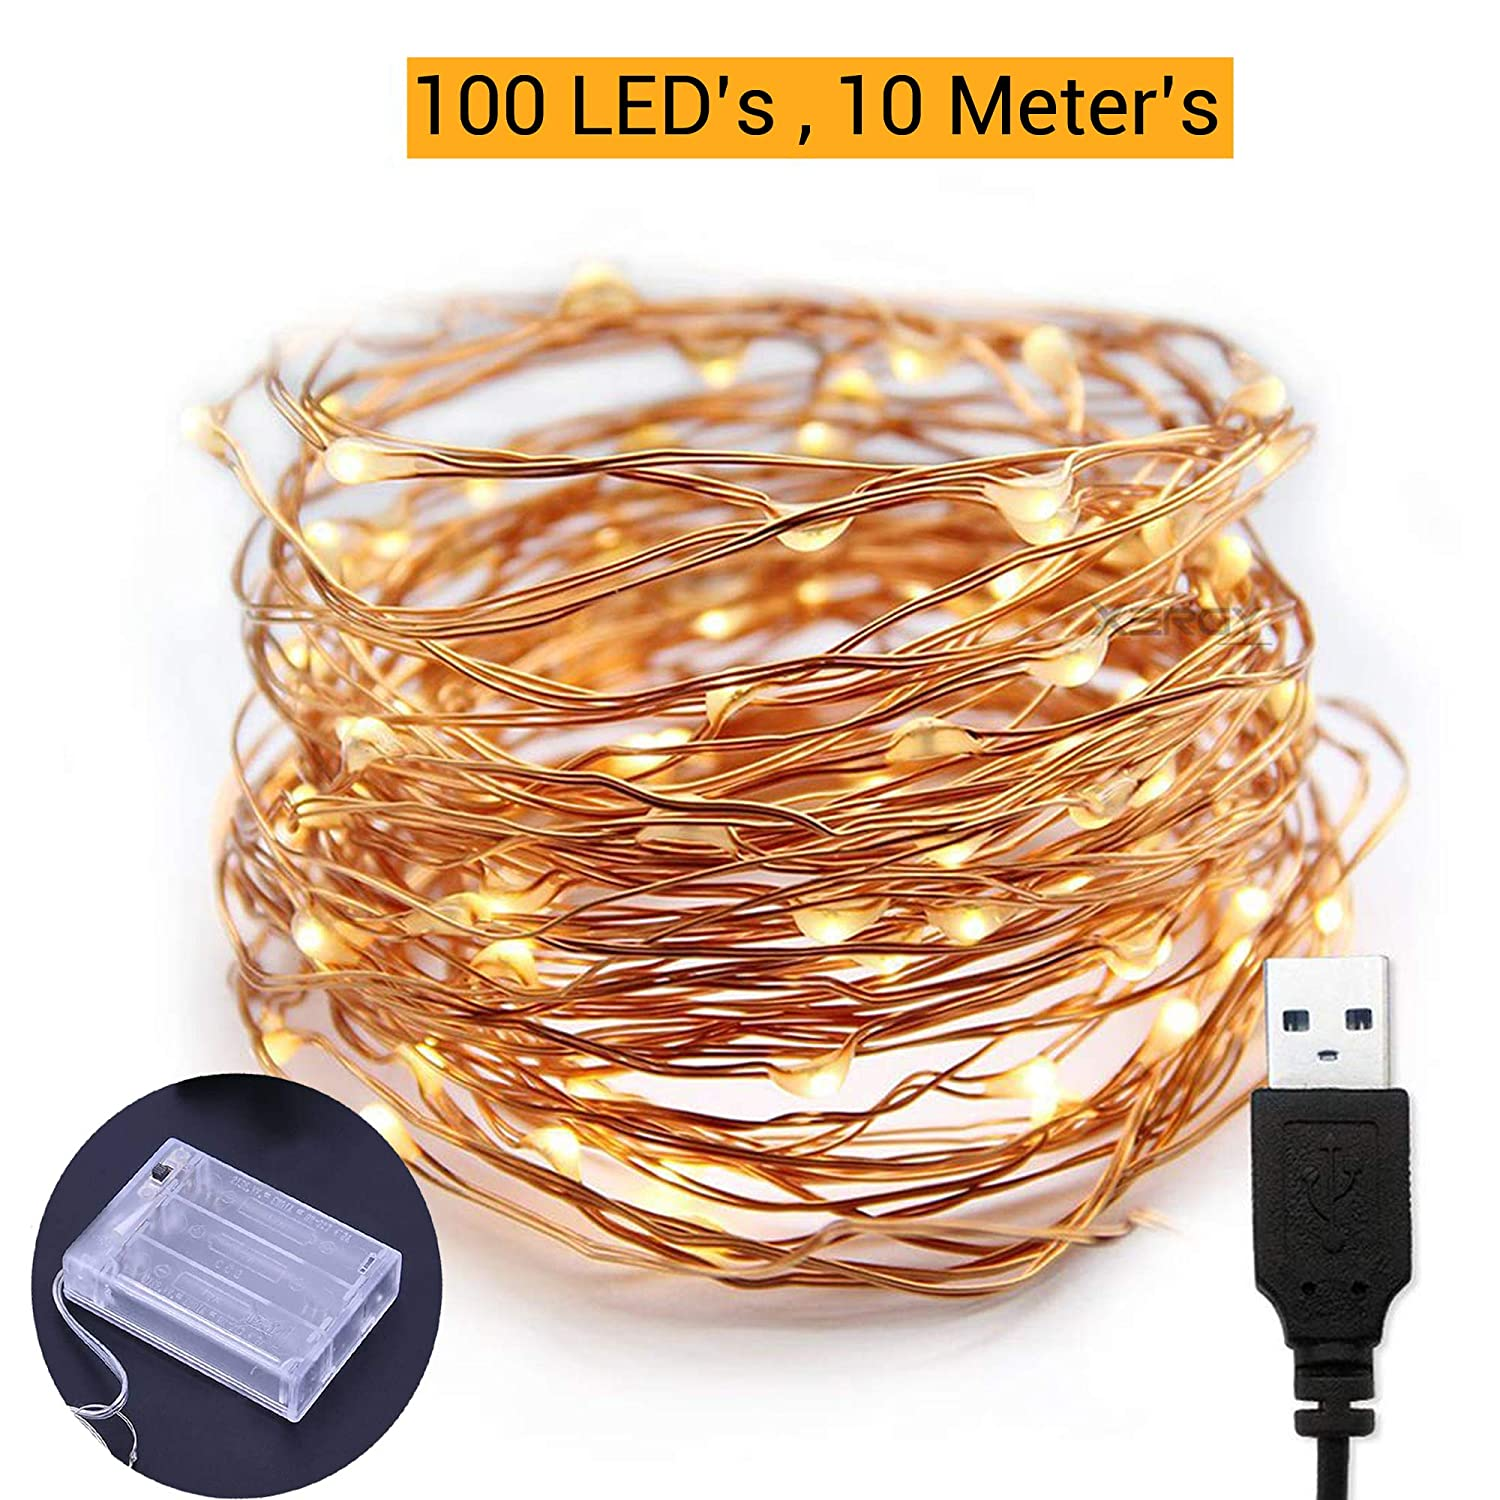 TIED RIBBONS 10 Meter 100 LED Fairy String Lights - USB And